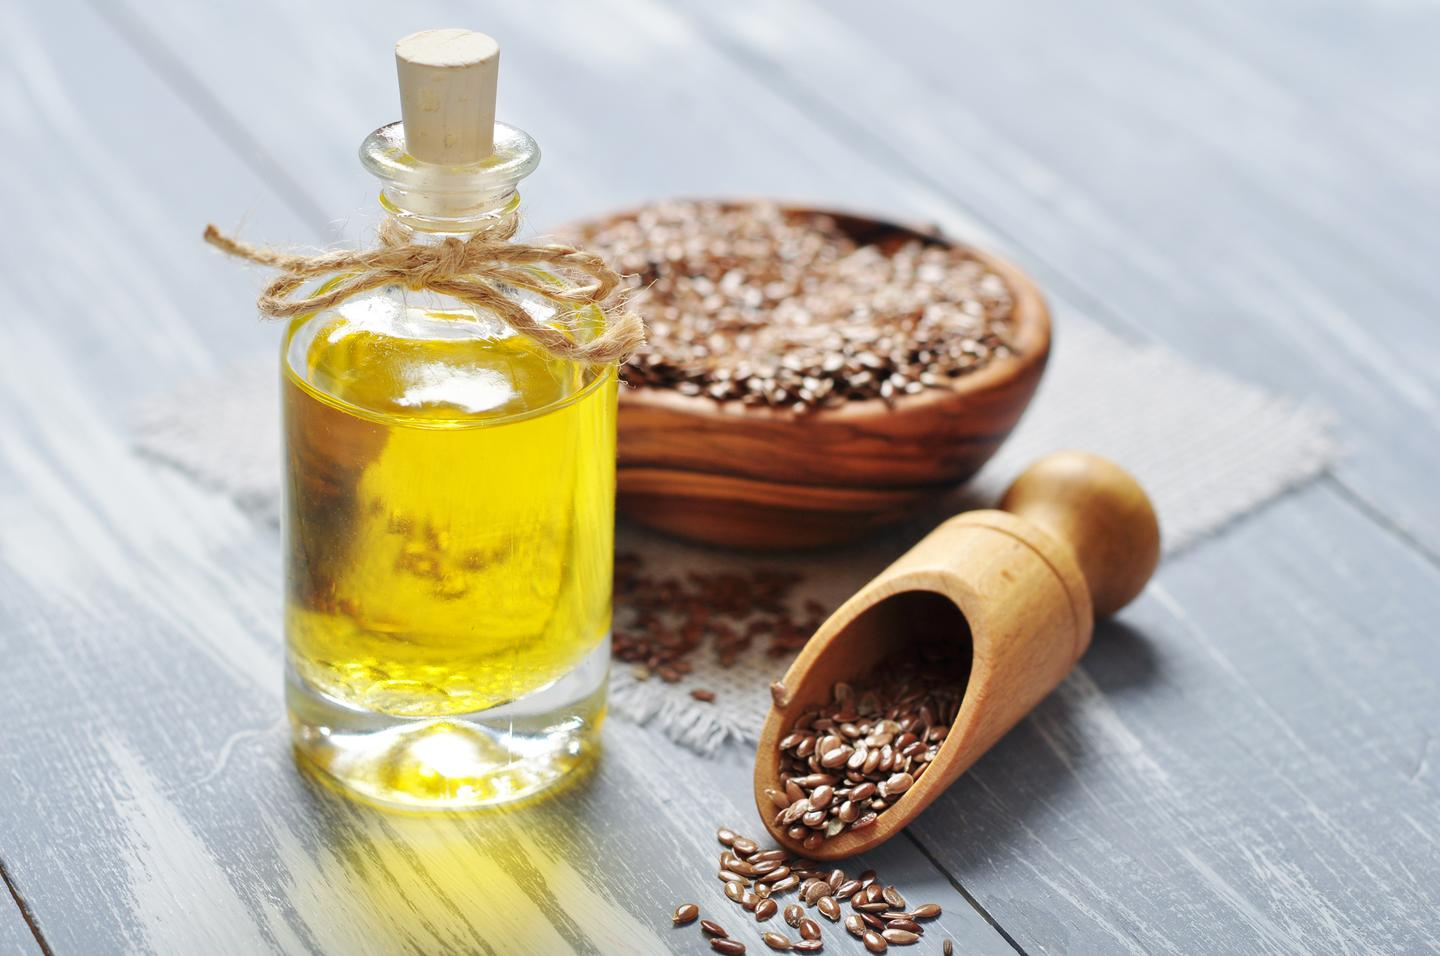 Also known as flaxseed oil, linseed oil is obtained from the flax plant, and is commonly used in the protection and preservation of wood, concrete and metal items